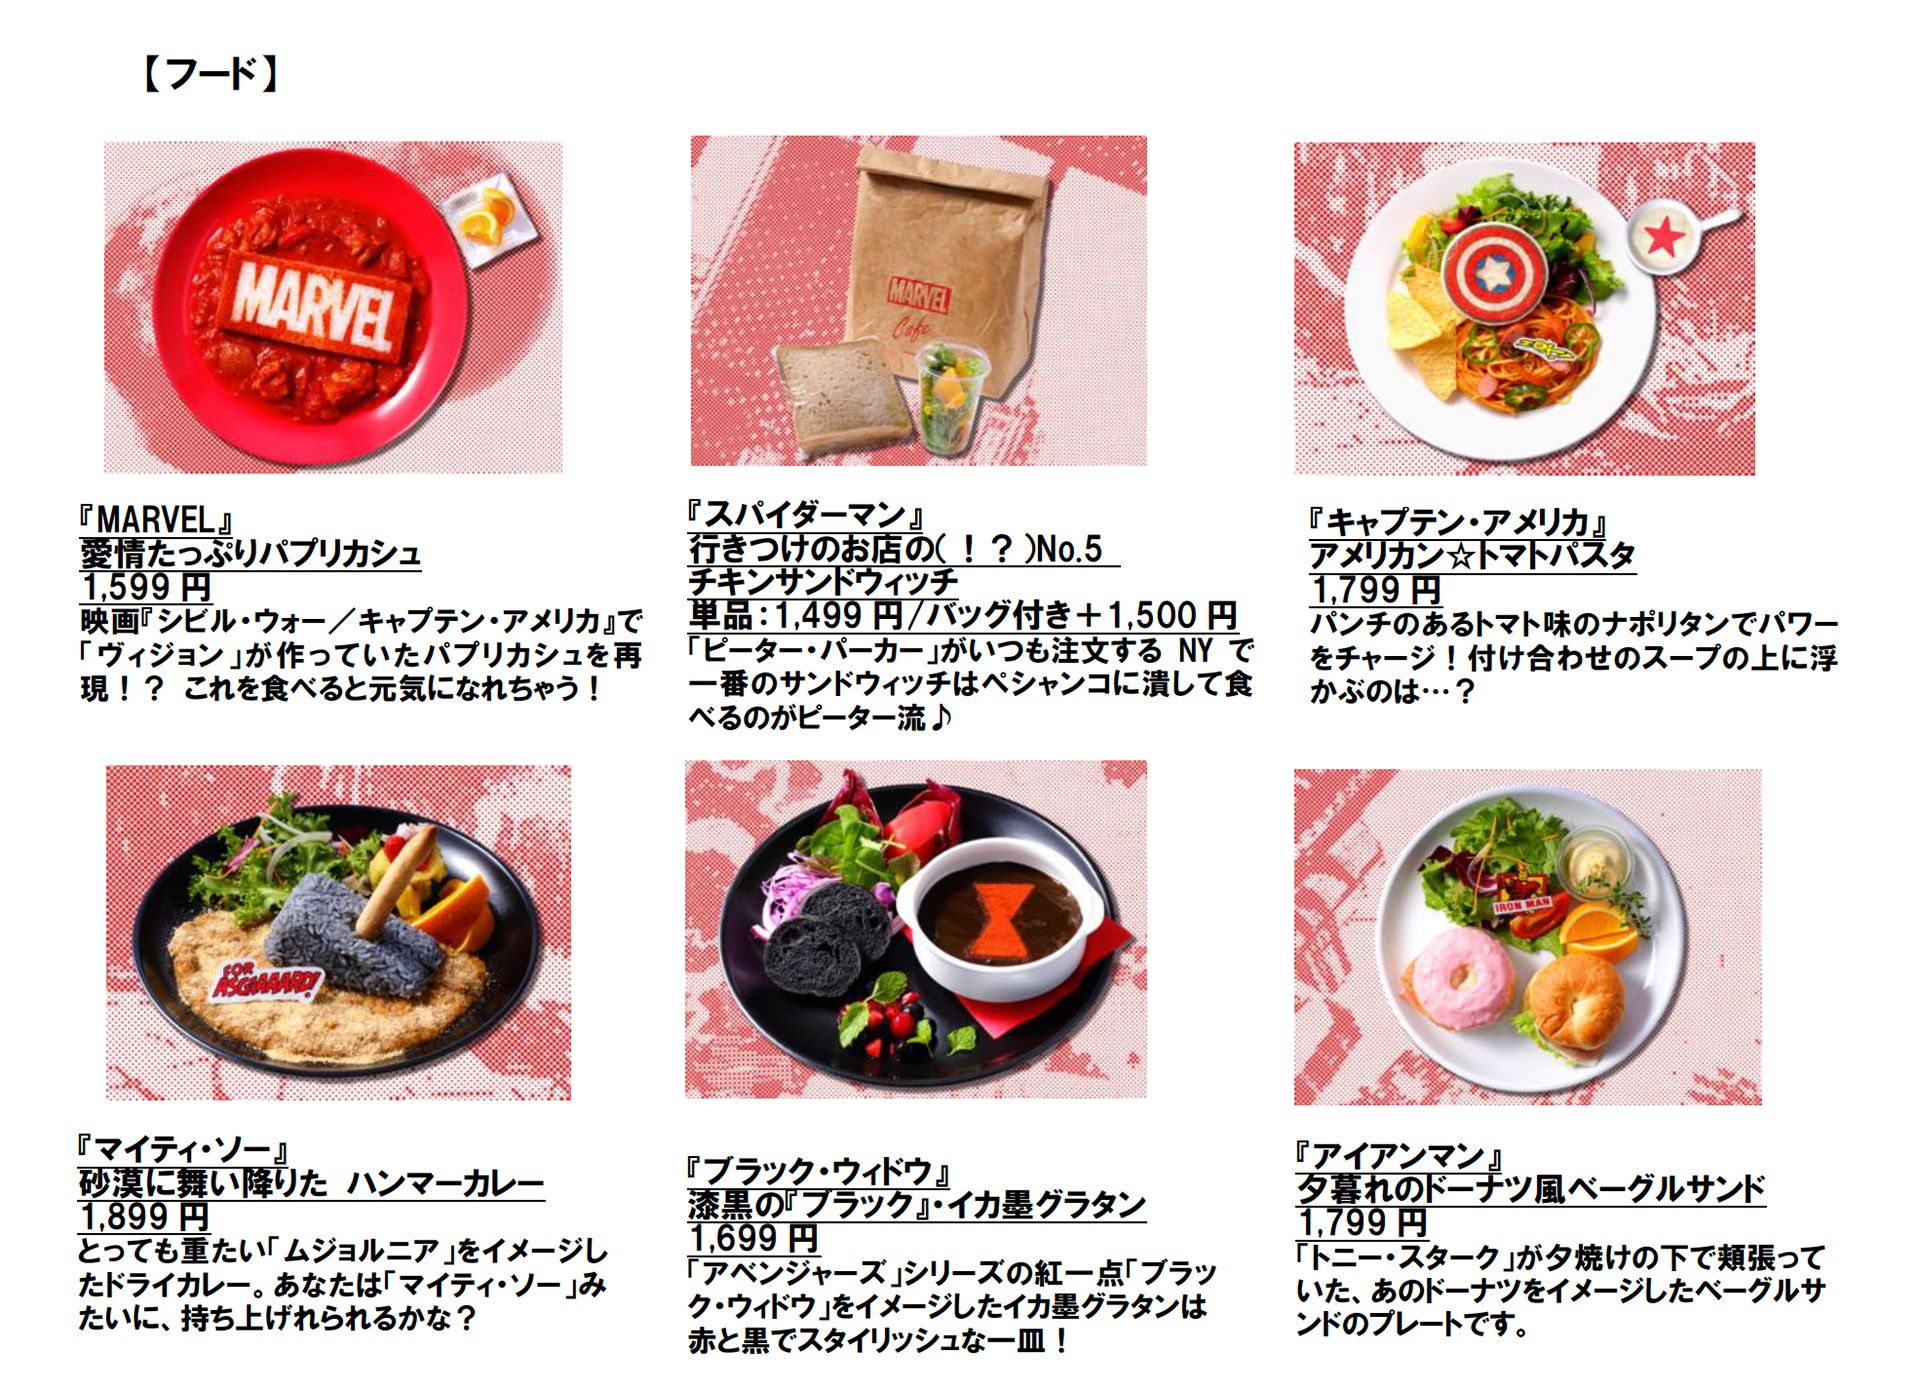 「MARVEL」cafe produced by OH MY CAFE